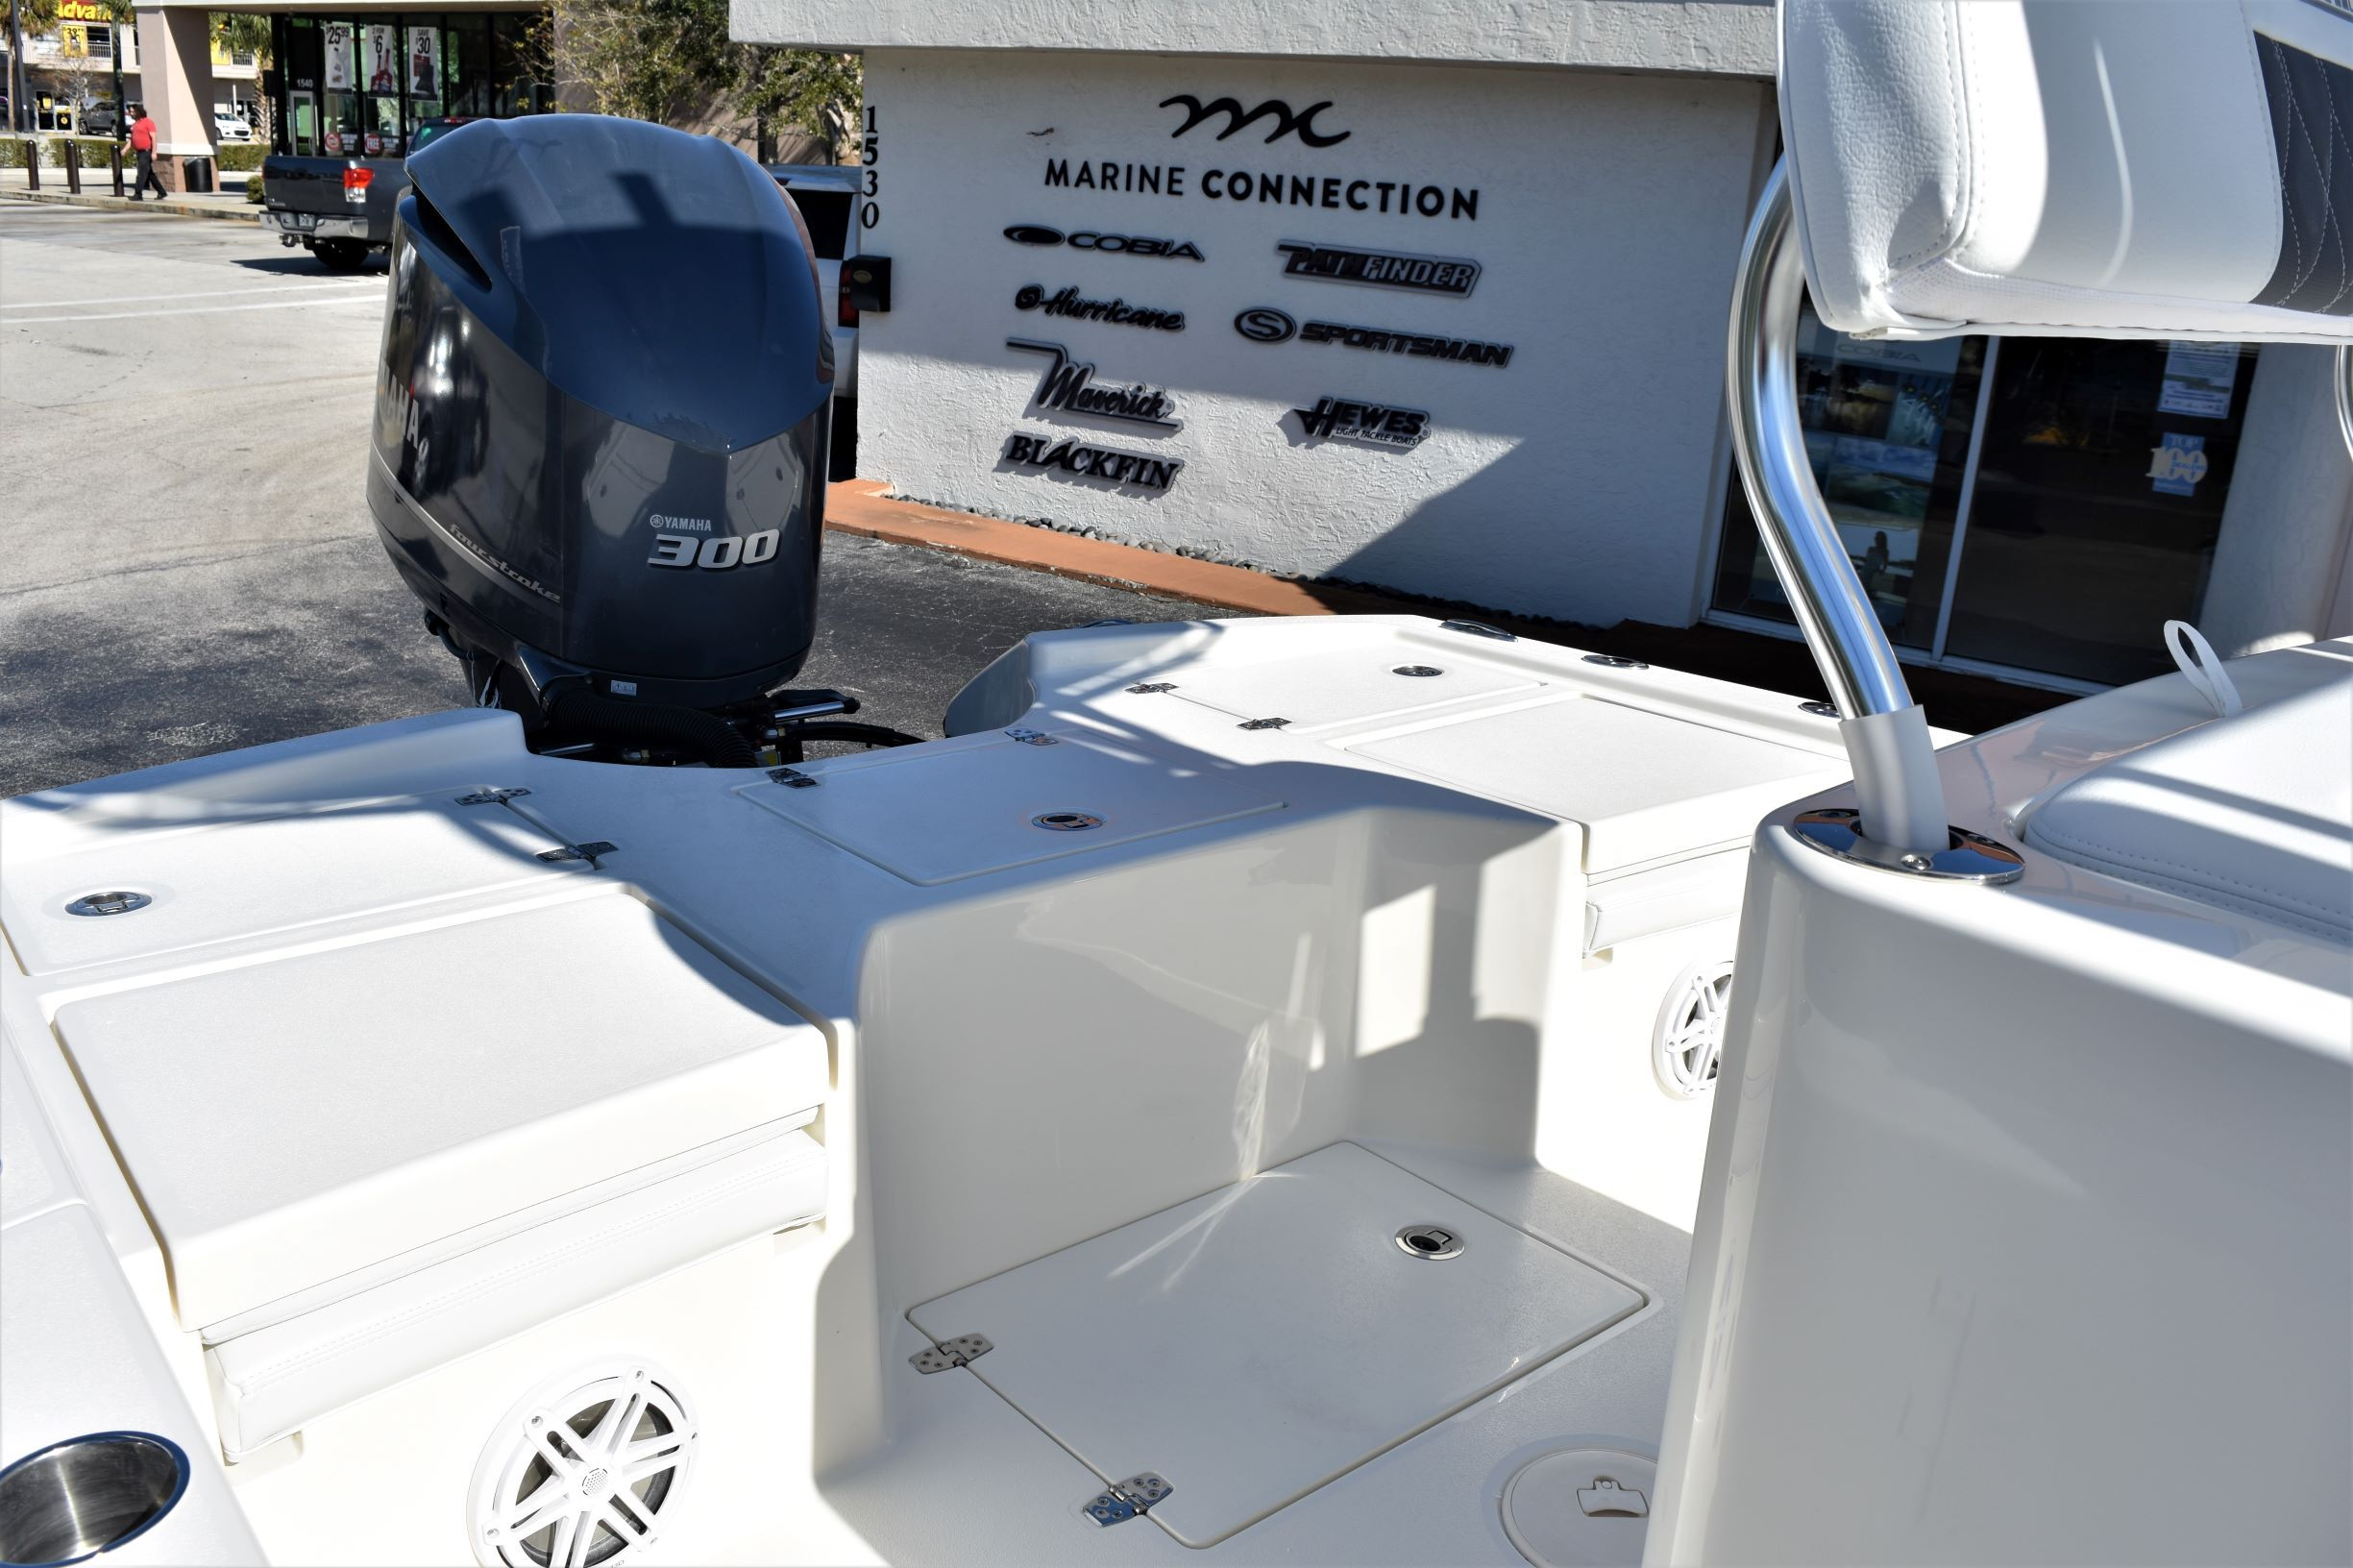 Thumbnail 19 for New 2020 Pathfinder 2500 Hybrid Bay Boat boat for sale in Vero Beach, FL